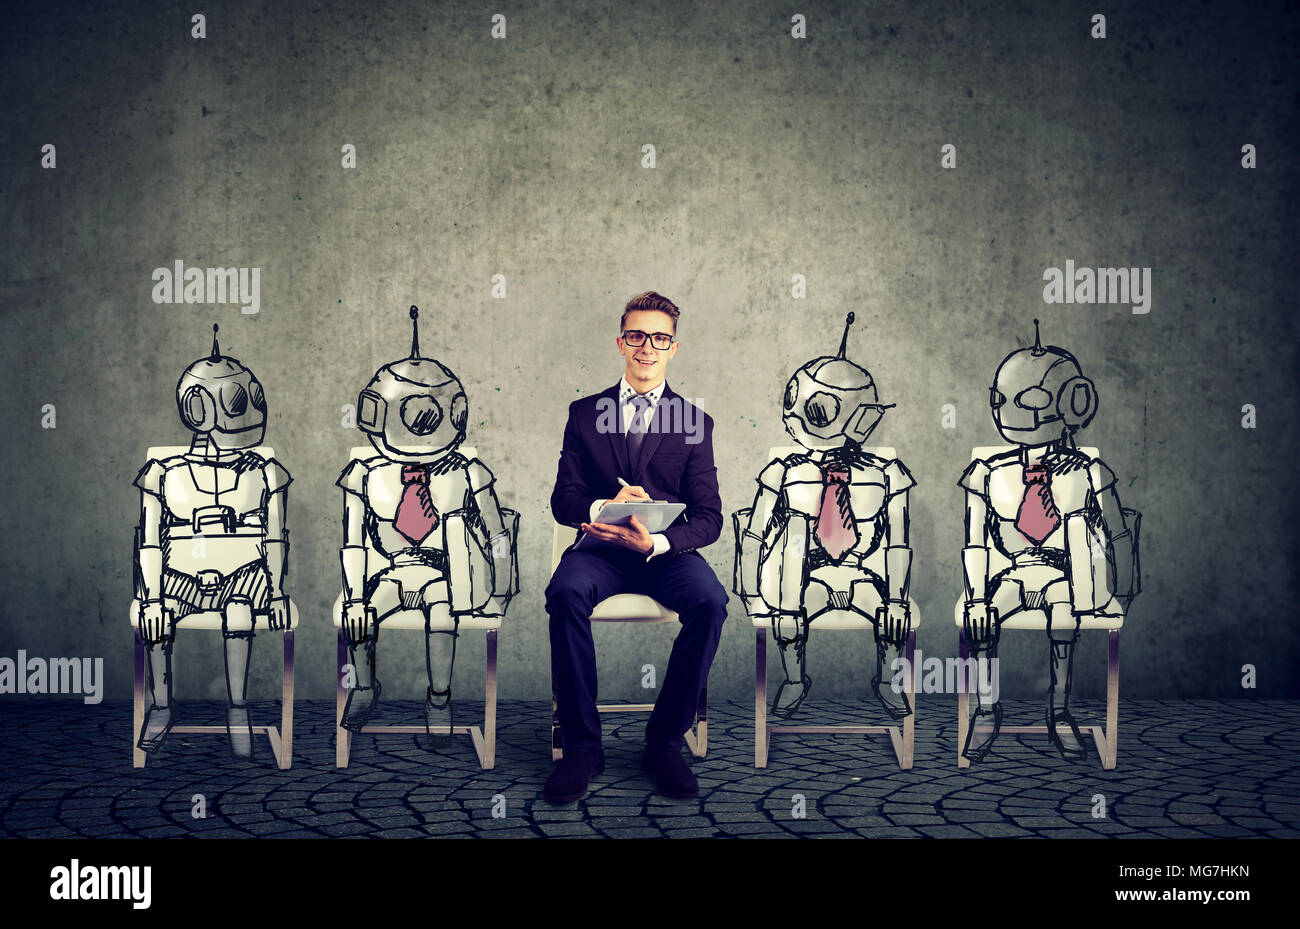 Human vs Robots concept. Business job applicant competing with artificial intelligence - Stock Image